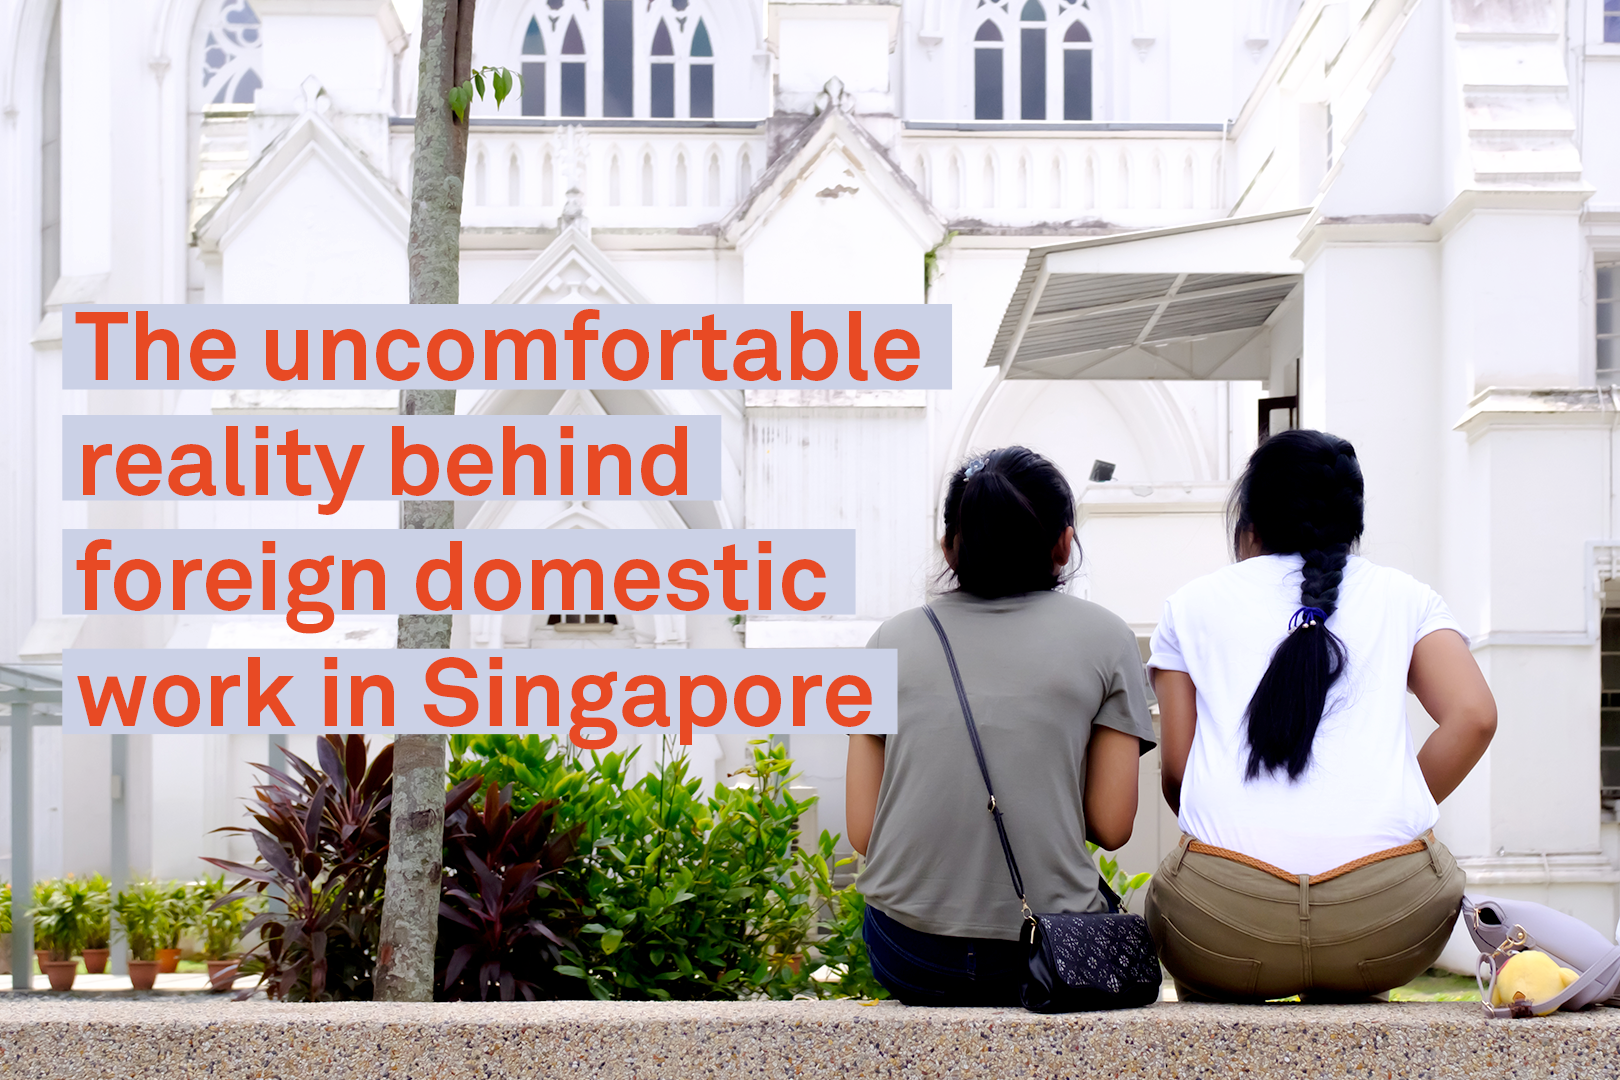 The uncomfortable reality behind foreign domestic work in Singapore